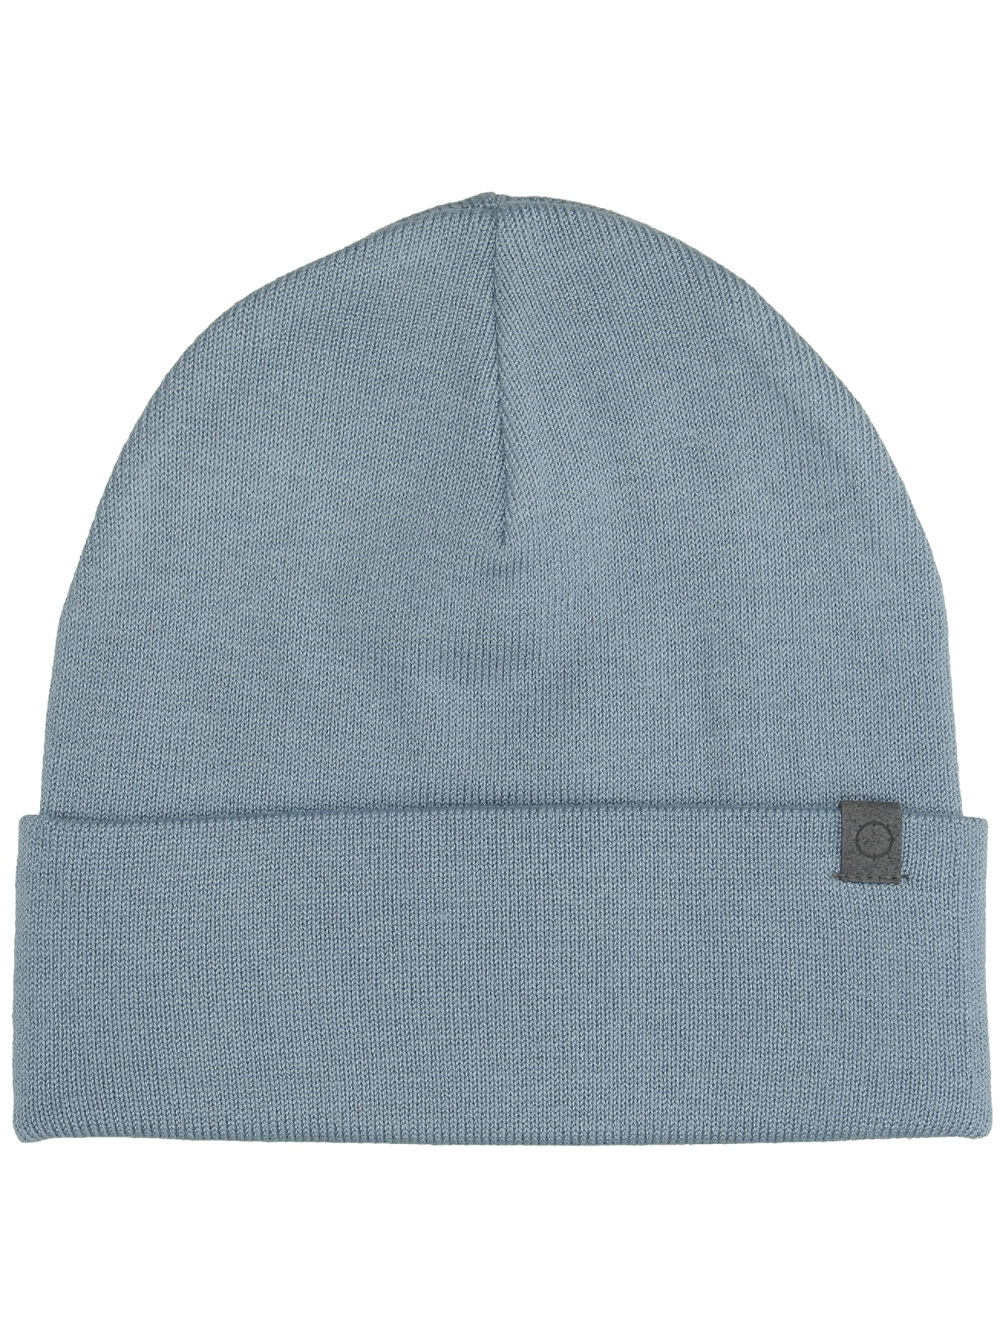 Sterling Ashley Beanie